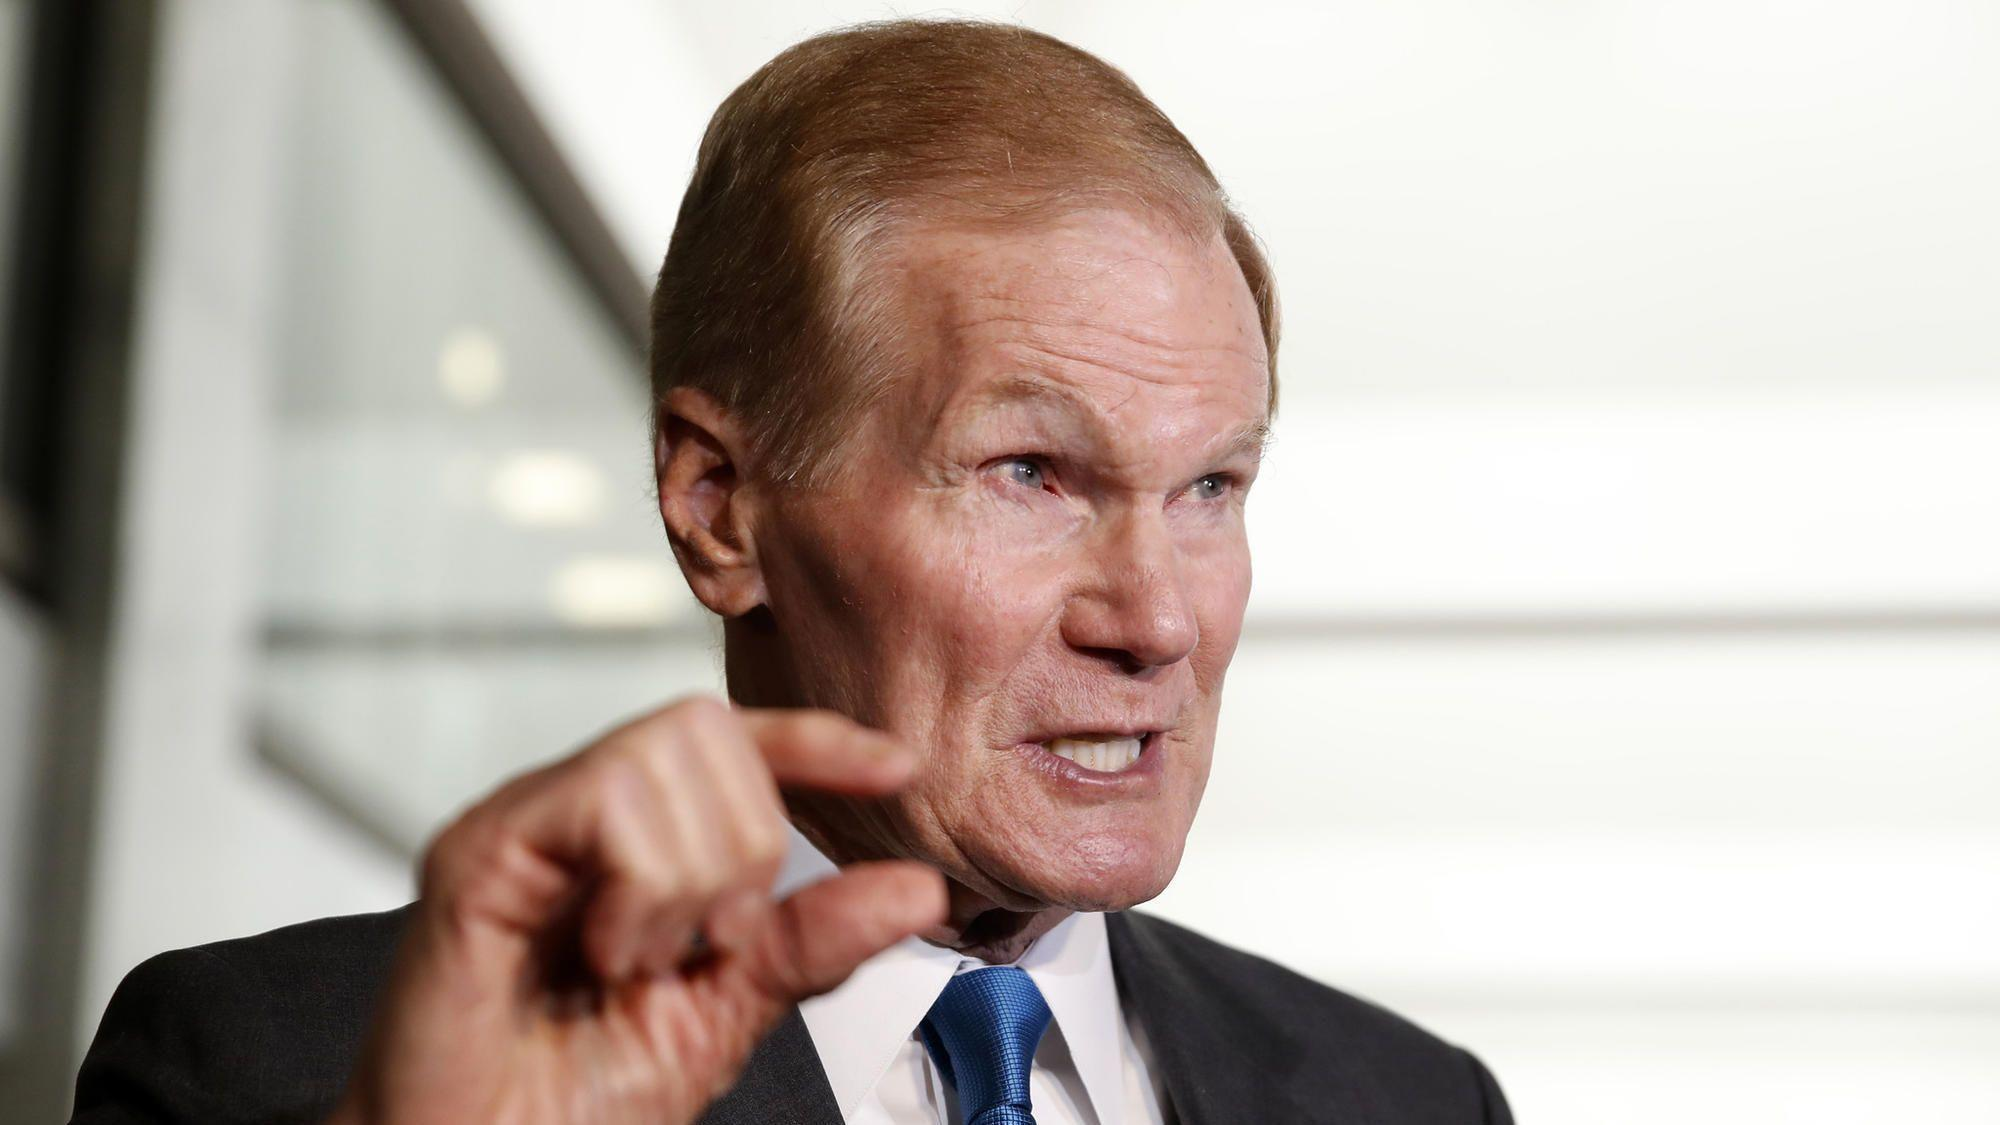 Russia has breached Florida's election systems, Sen. Bill Nelson says